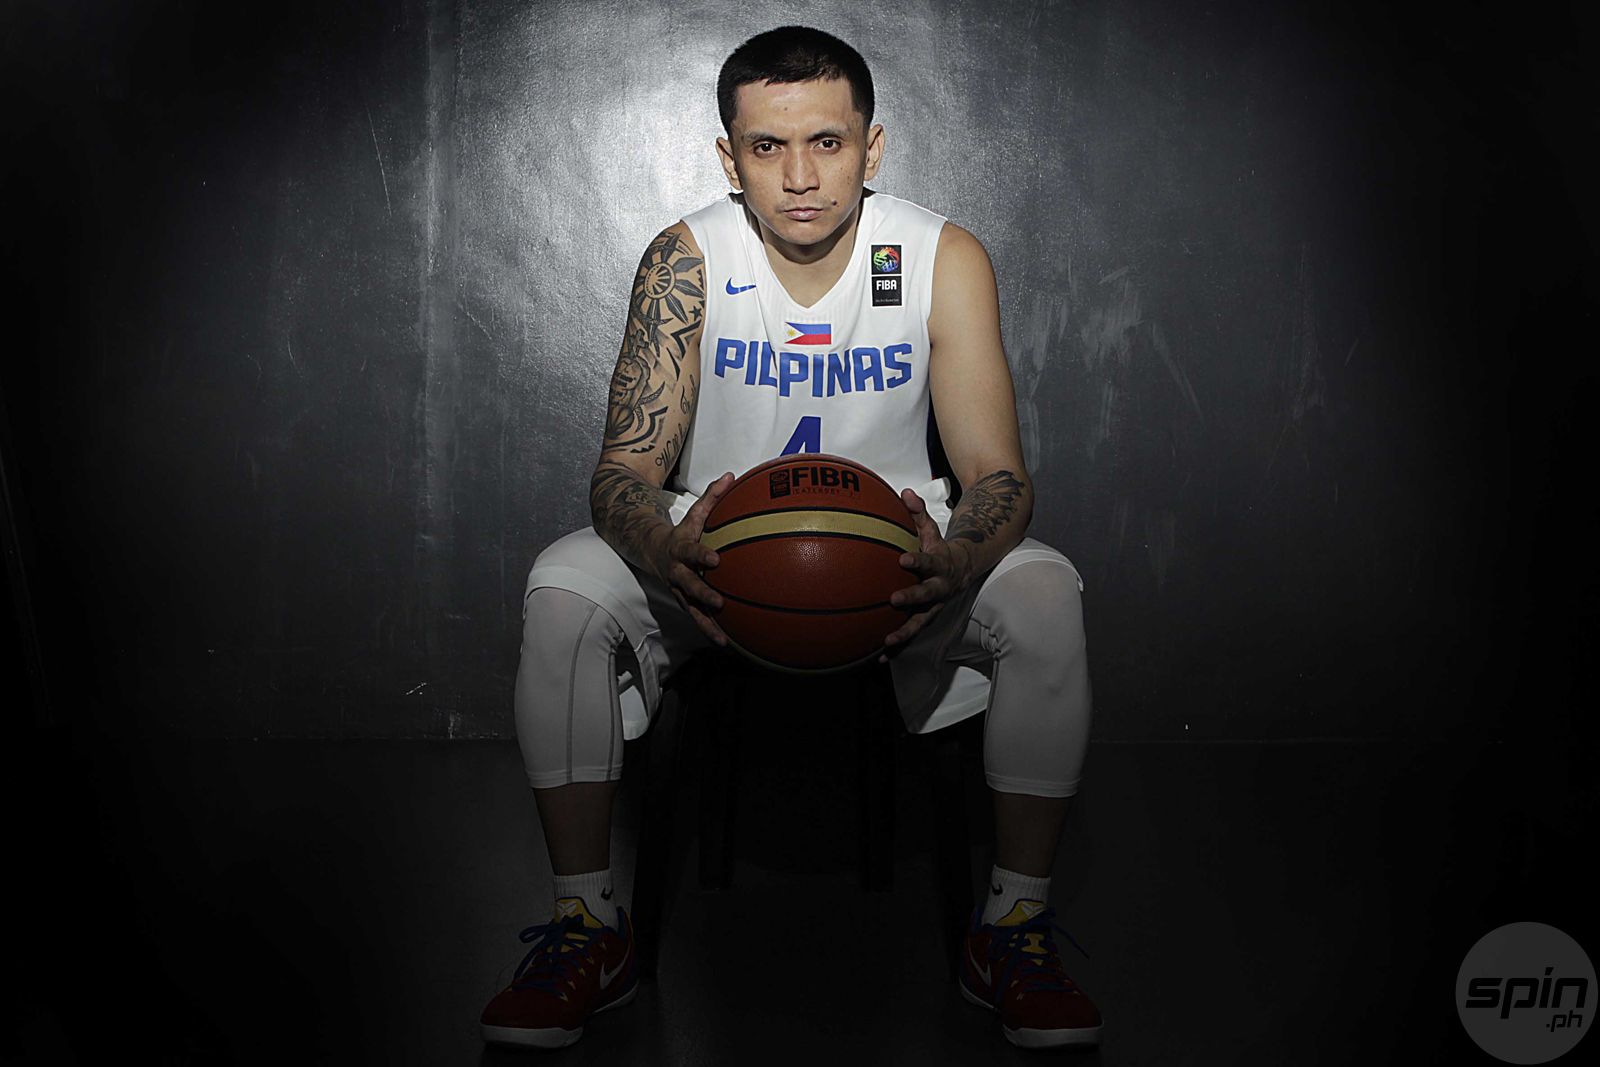 ALAPAG: SPORTSMAN OF THE YEAR